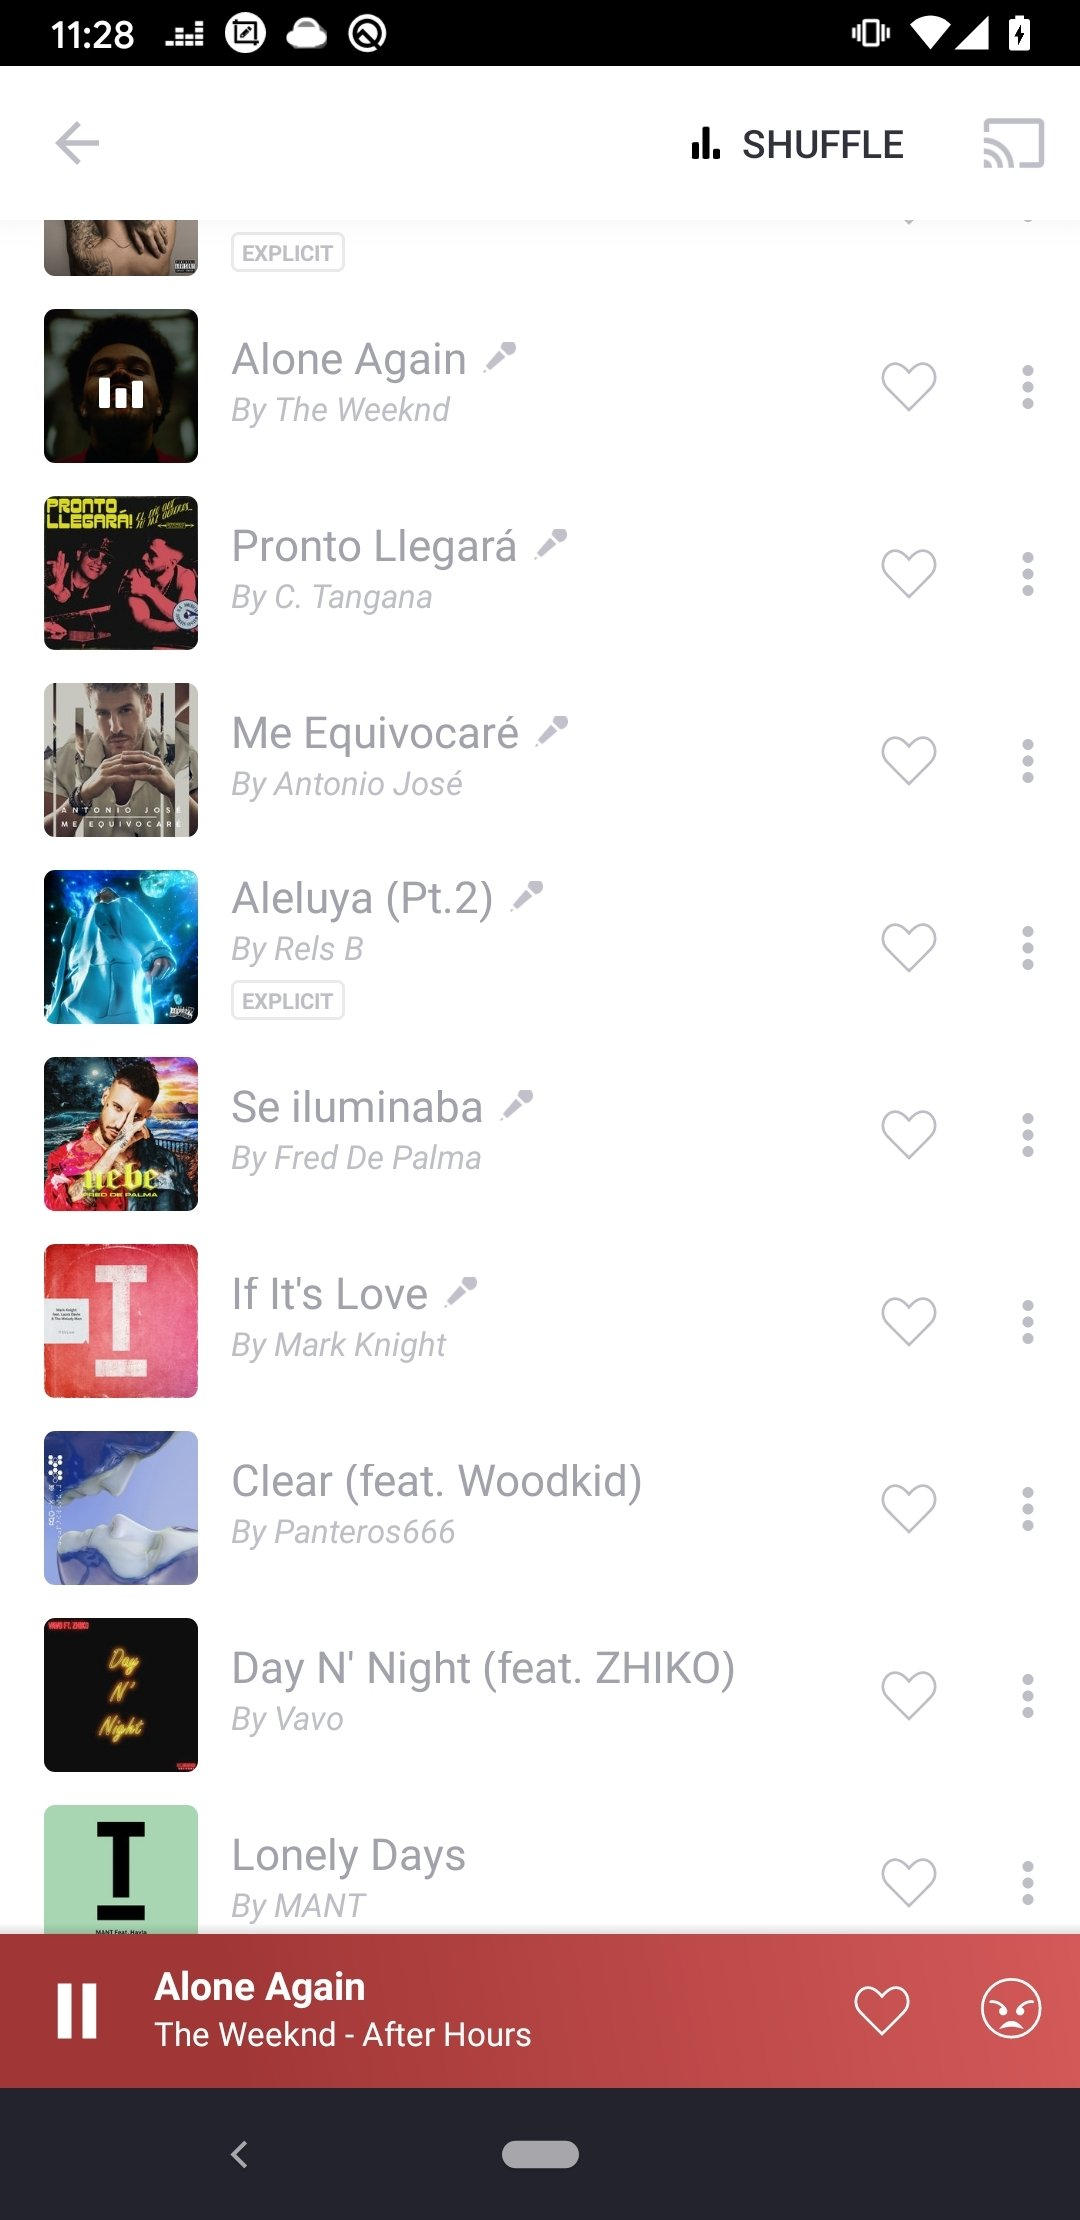 Deezer Music 6.1.16.1 - Download for Android APK Free